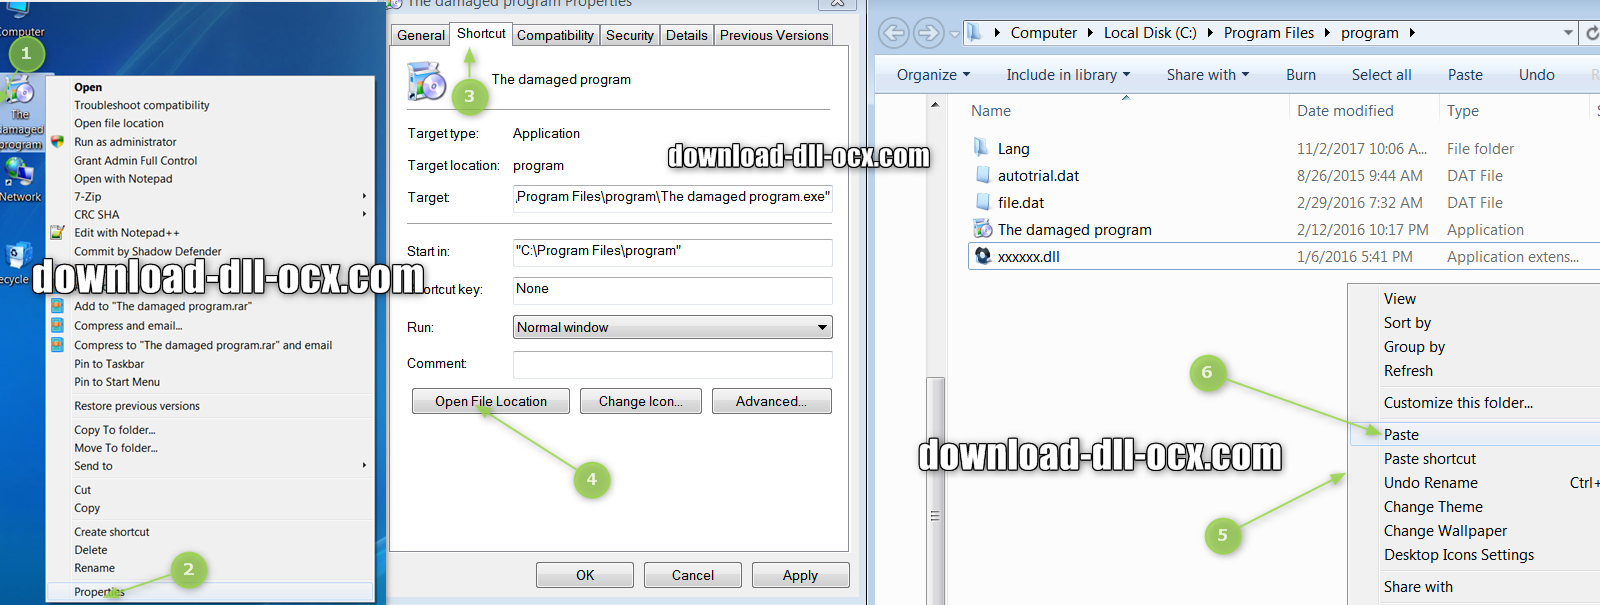 how to install LegitCheckControl.dll file? for fix missing